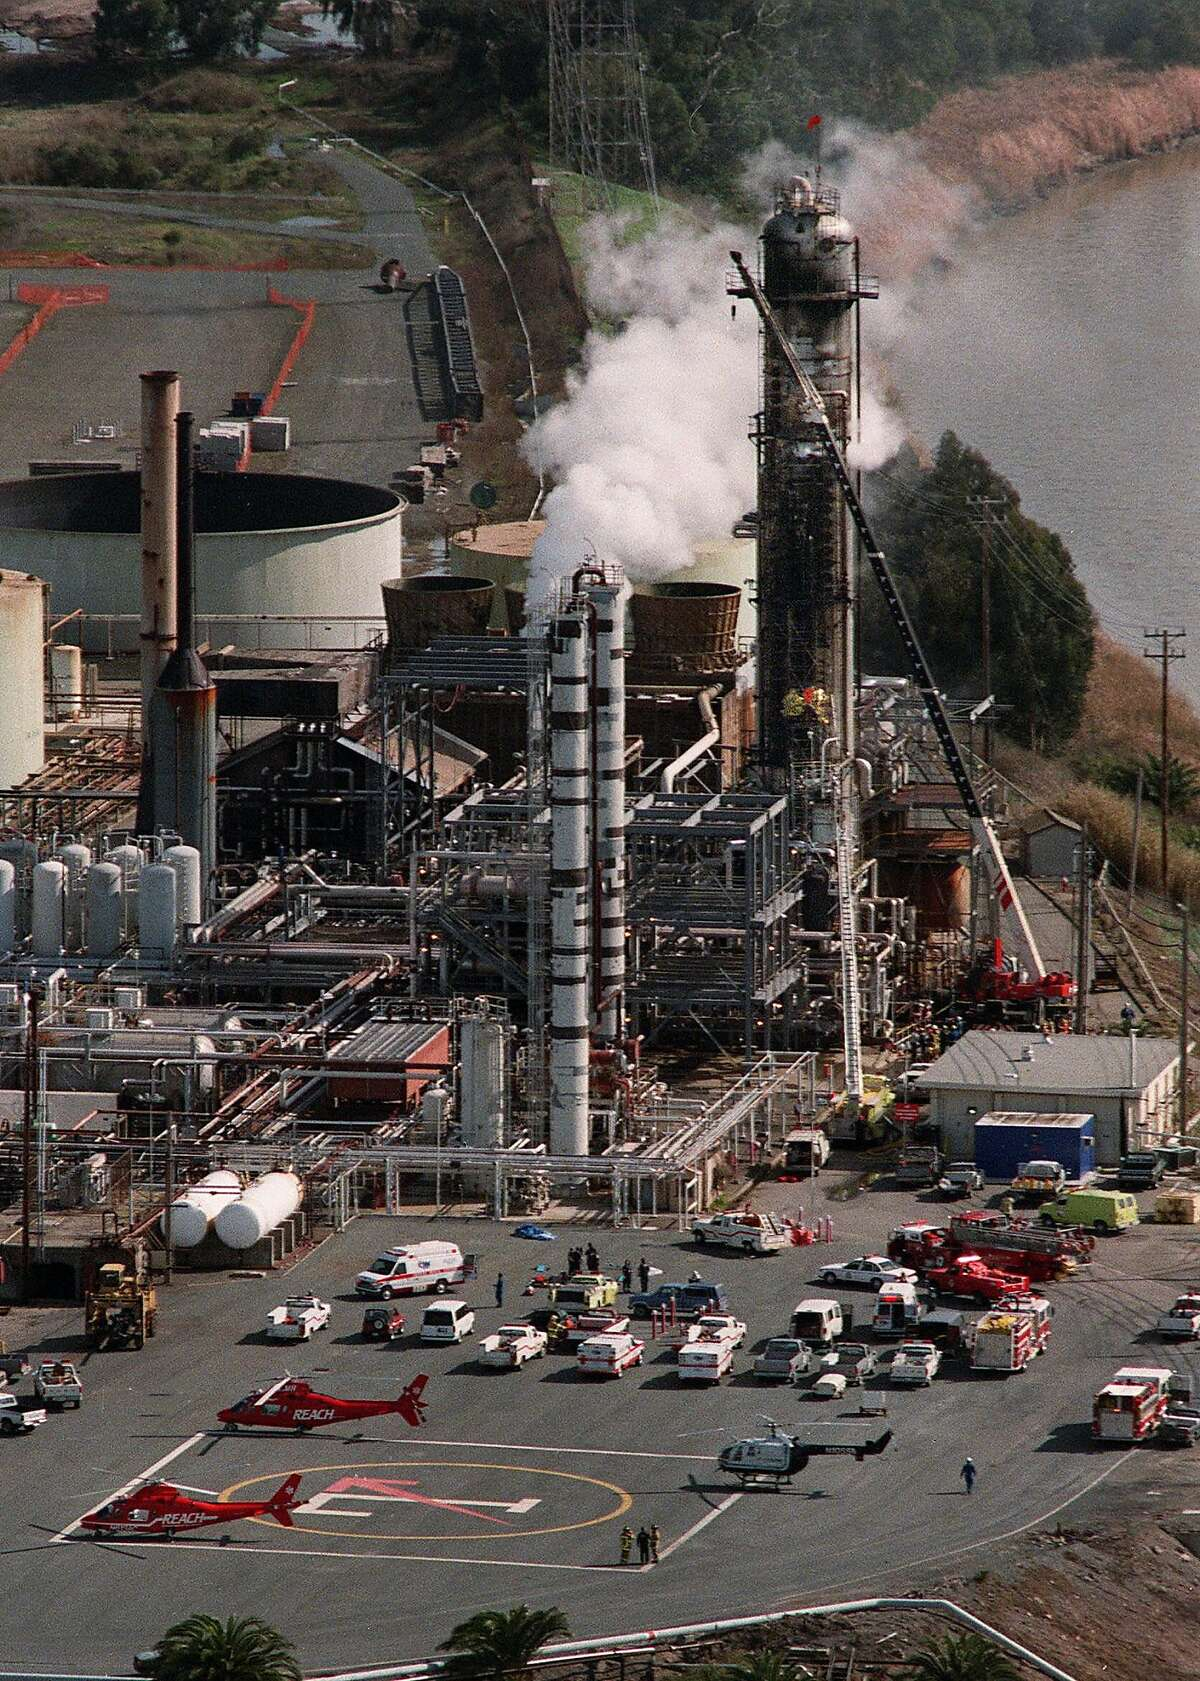 Emergency helicopters and ambulances stand by at Tosco refinery in Martinez, Calif., where an explosion and fire took place Tuesday, Feb. 23, 1999. Firefighters in yellow, halfway up the scaffolding on the largest tower at right, climb up the scaffolding to get to the victims. As of 4:30 pm Tuesday, officials said one oil worker was killed and at least four others were seriously injured following the explosion. (AP Photo/Contra Costa Times, Susan Pollard) ALSO RAN: 03/16/1999, 4/24/2000,